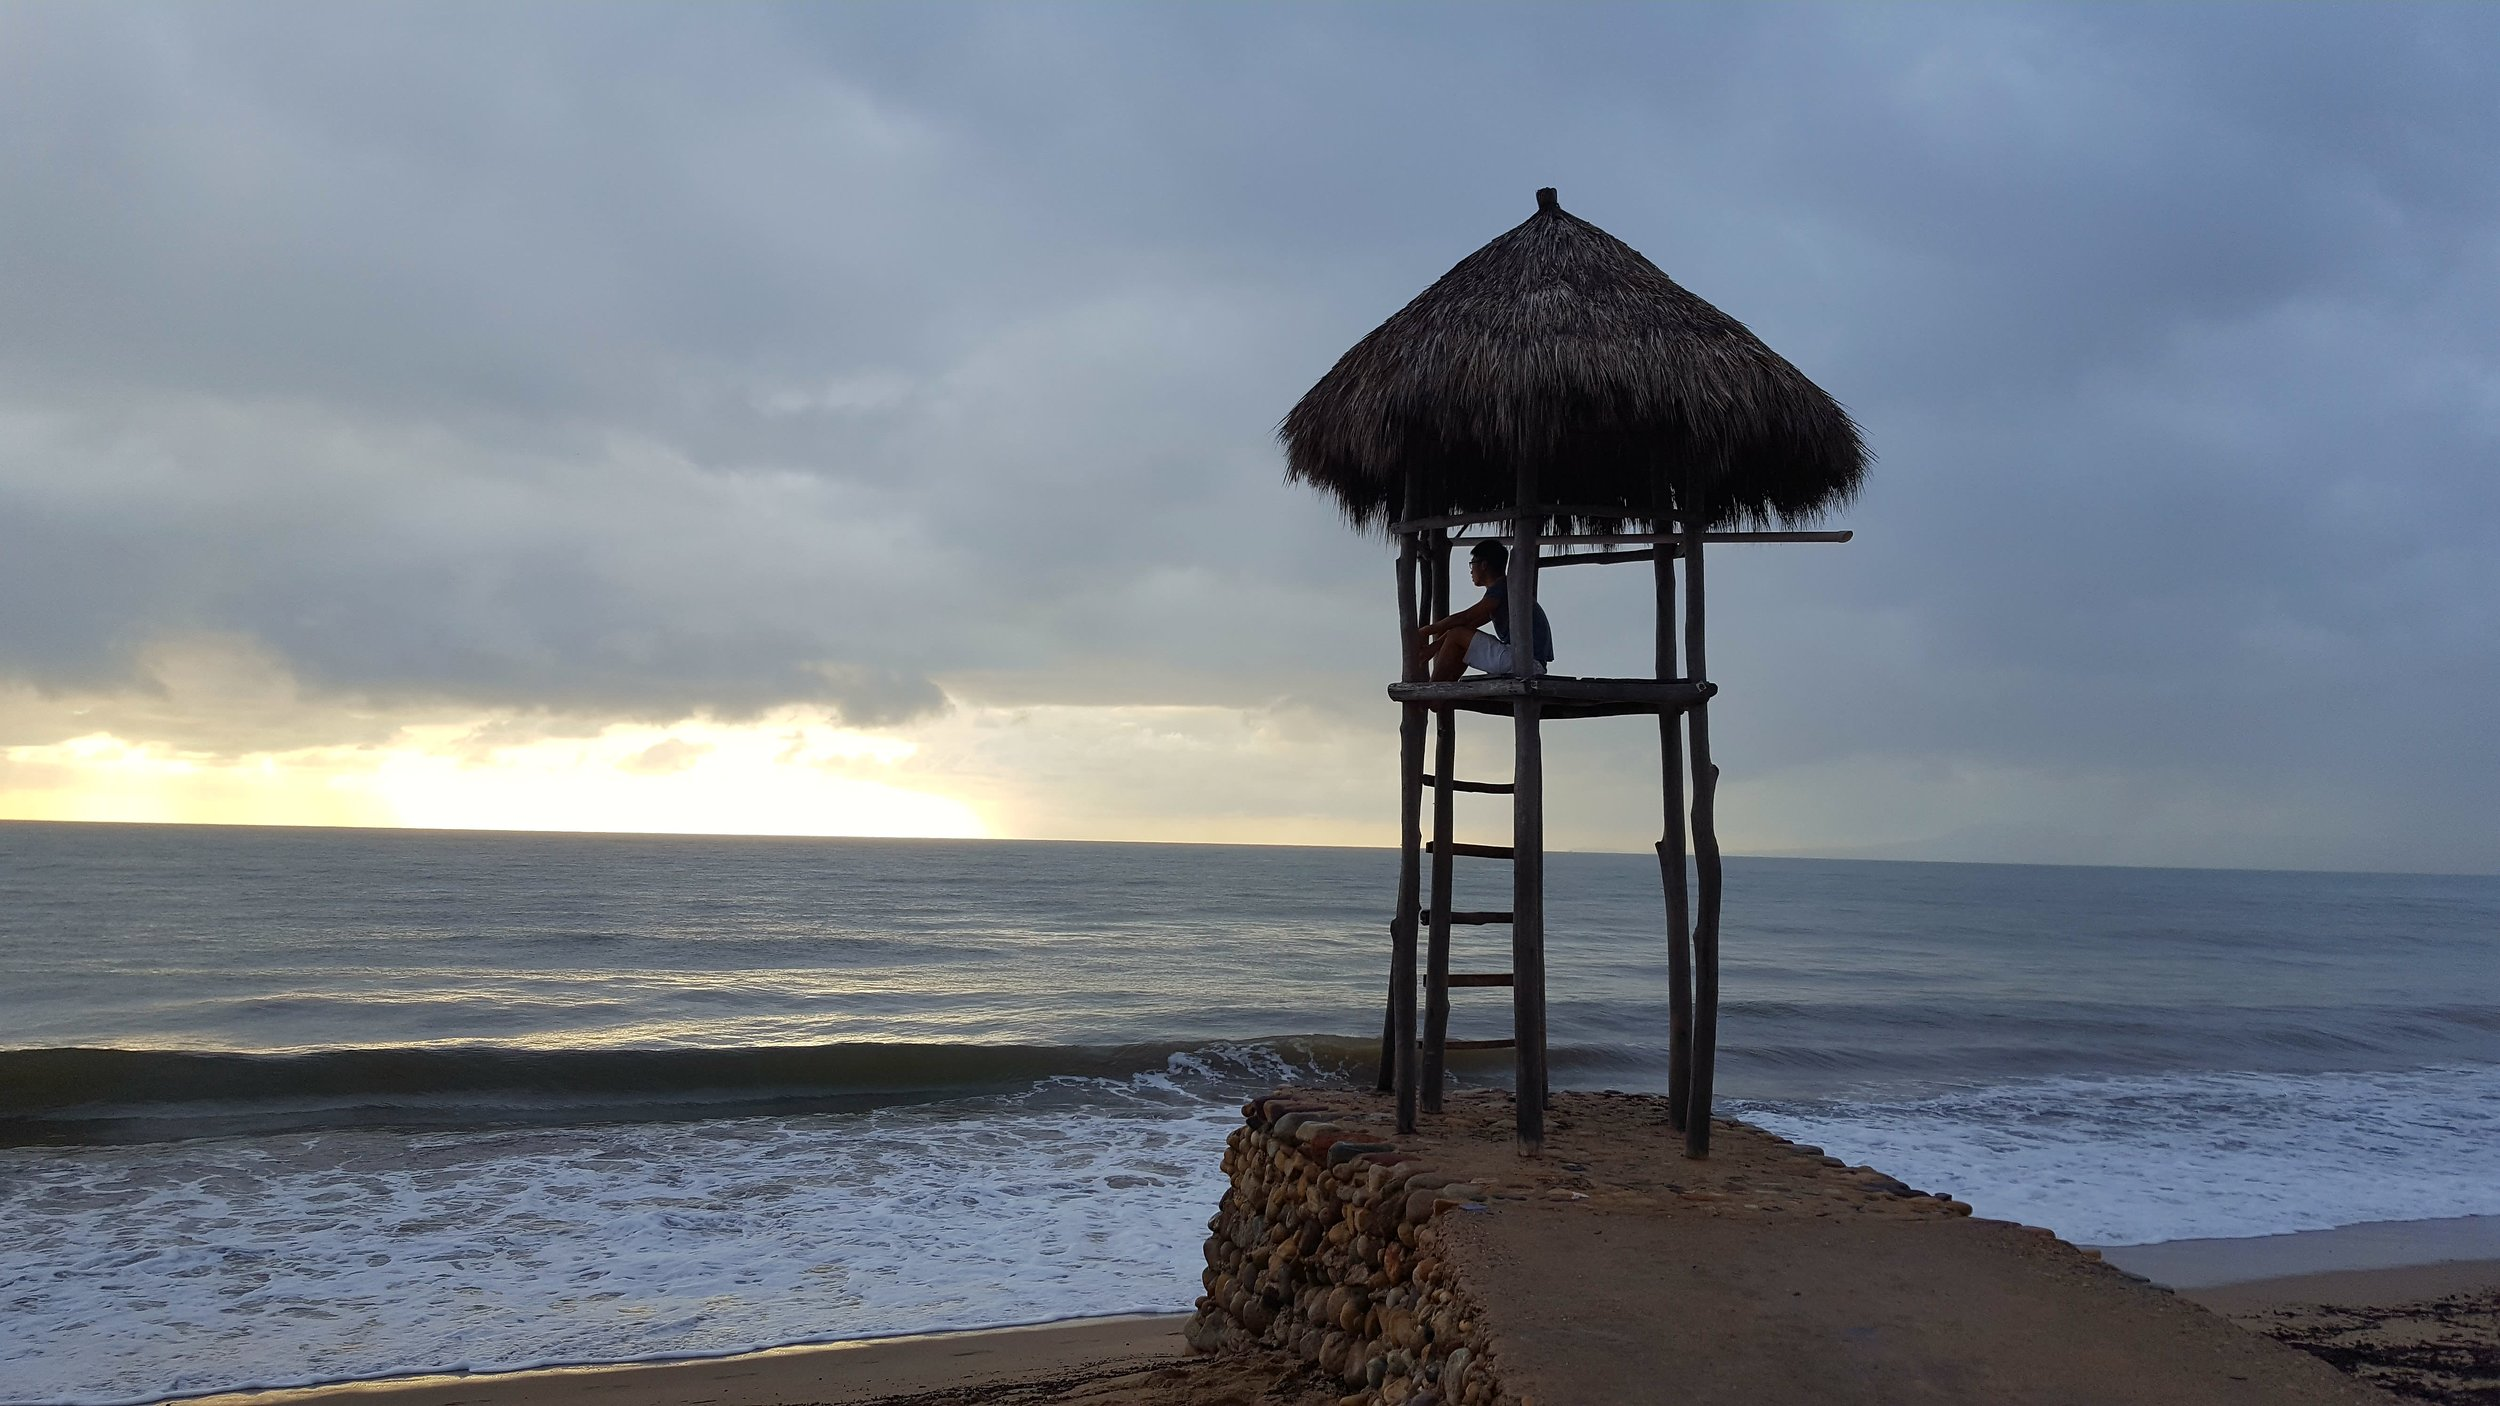 Yuting found the perfect beach lookout in Puerto Vallarta